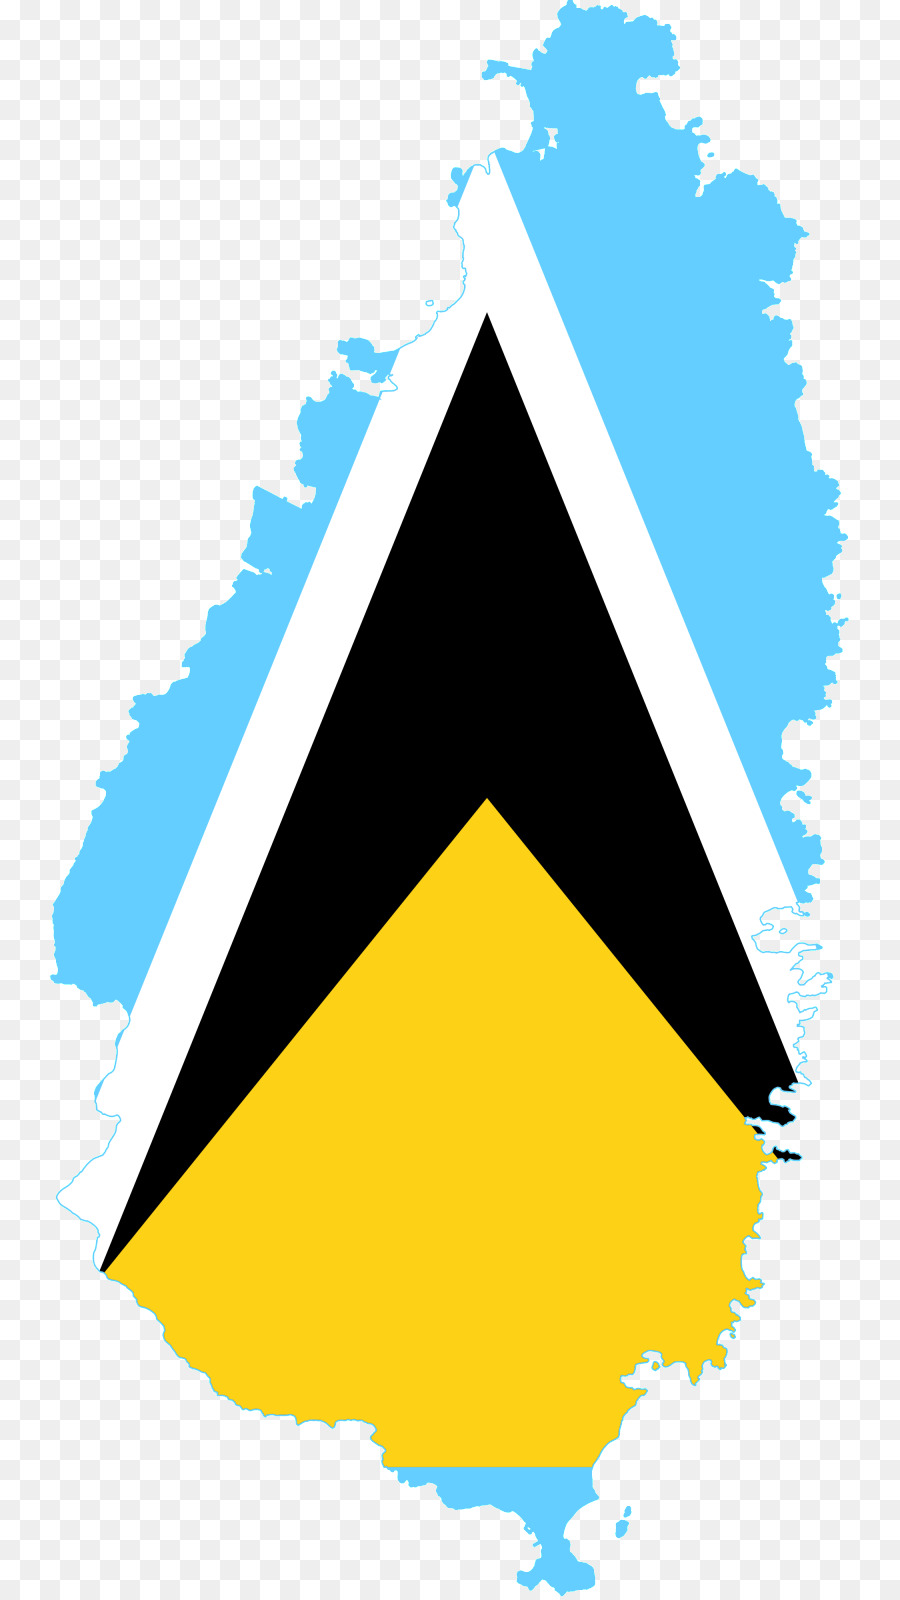 900x1600 Flag Of Saint Lucia Castries Geography Of Saint Lucia